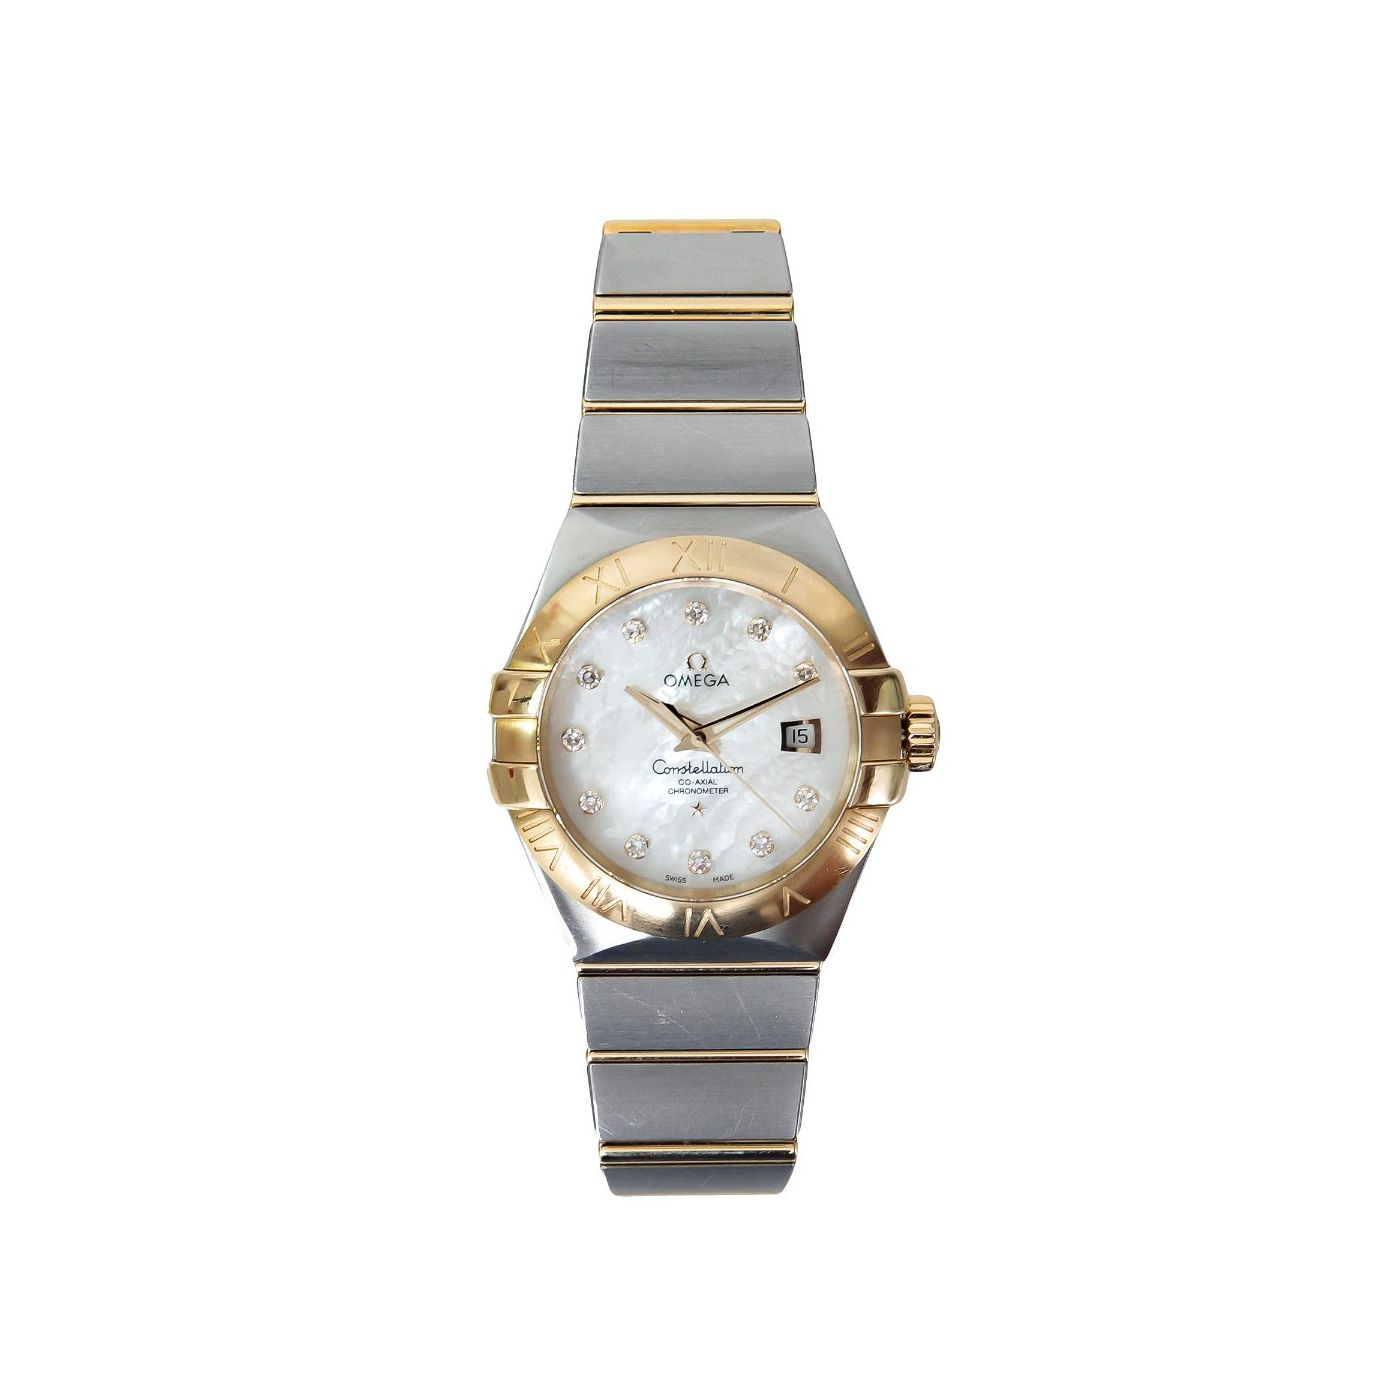 Omega Mother of Pearl Diamonds Constellation Co-Axial Watch